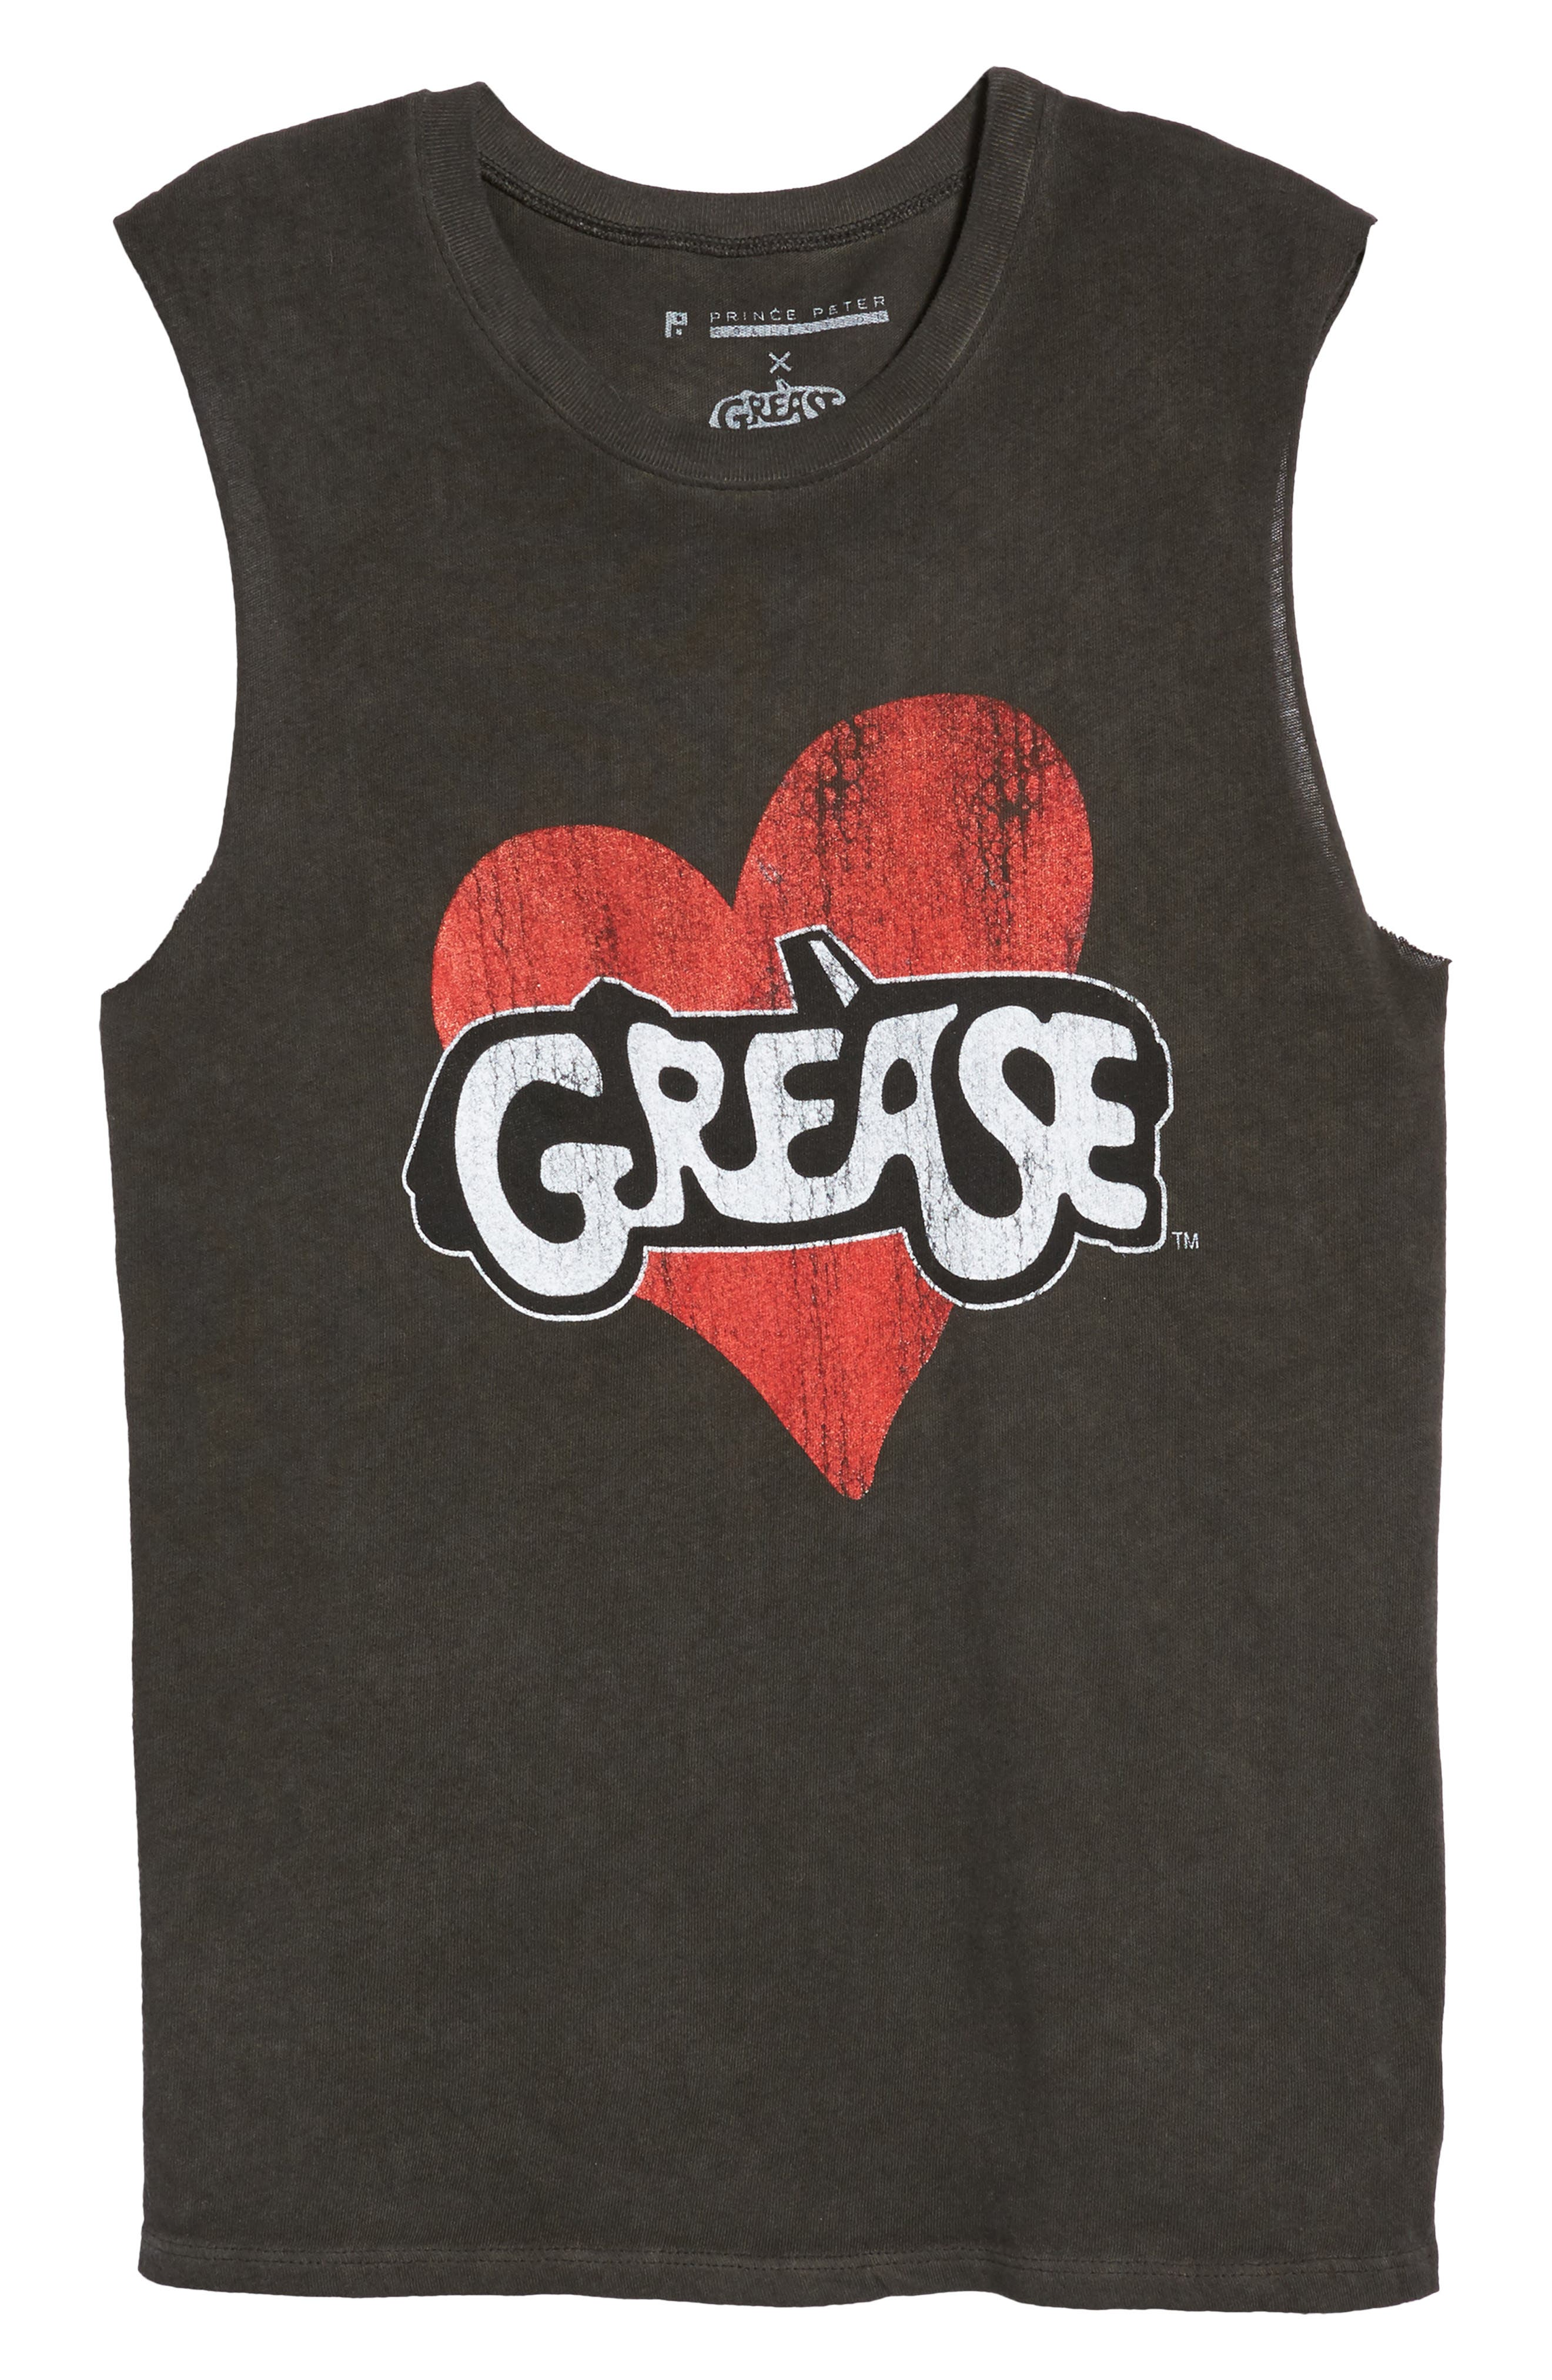 x Grease Muscle Tee,                             Alternate thumbnail 6, color,                             001